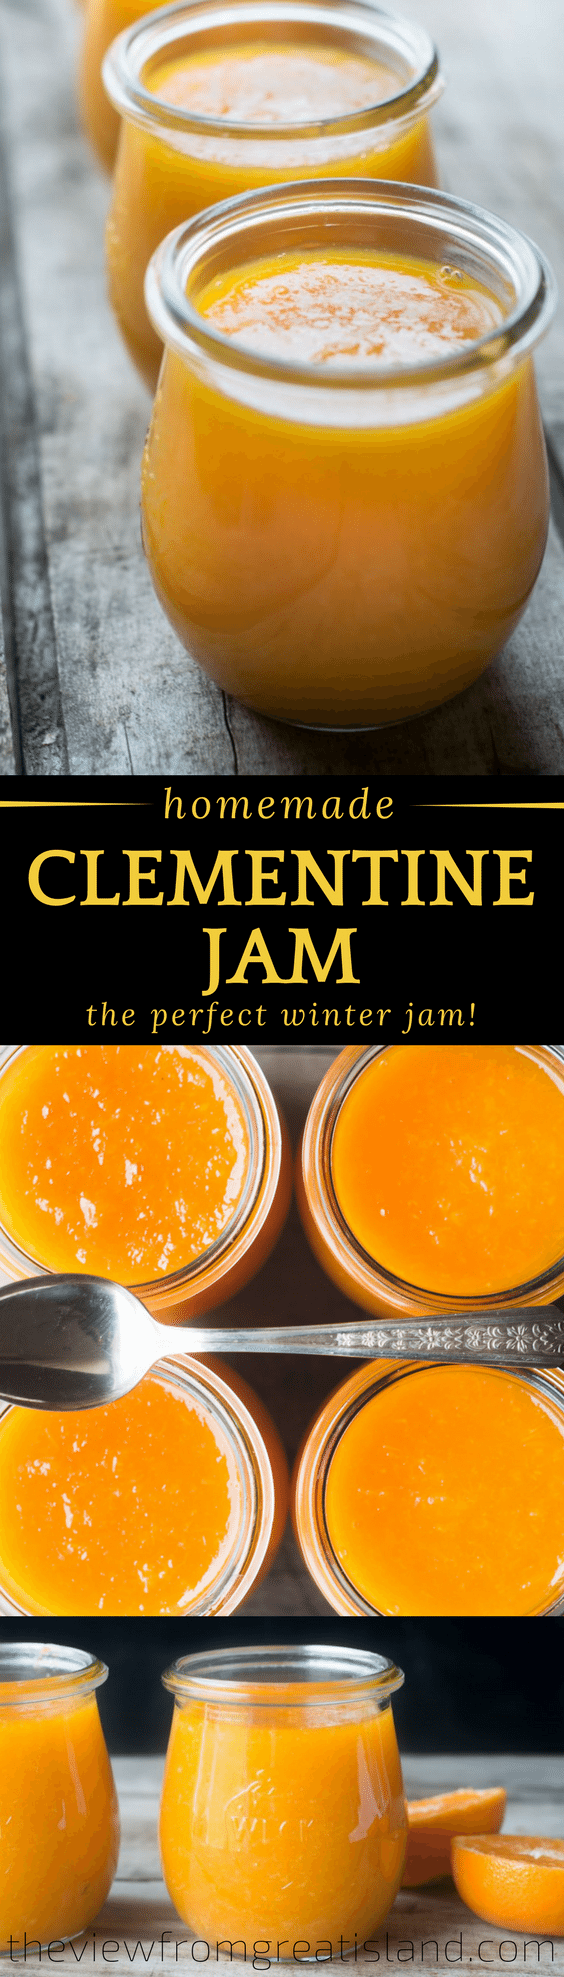 Clementine Jam has a unique brilliantly fresh flavor that plays well with all kinds of toast croissants scones and biscuits